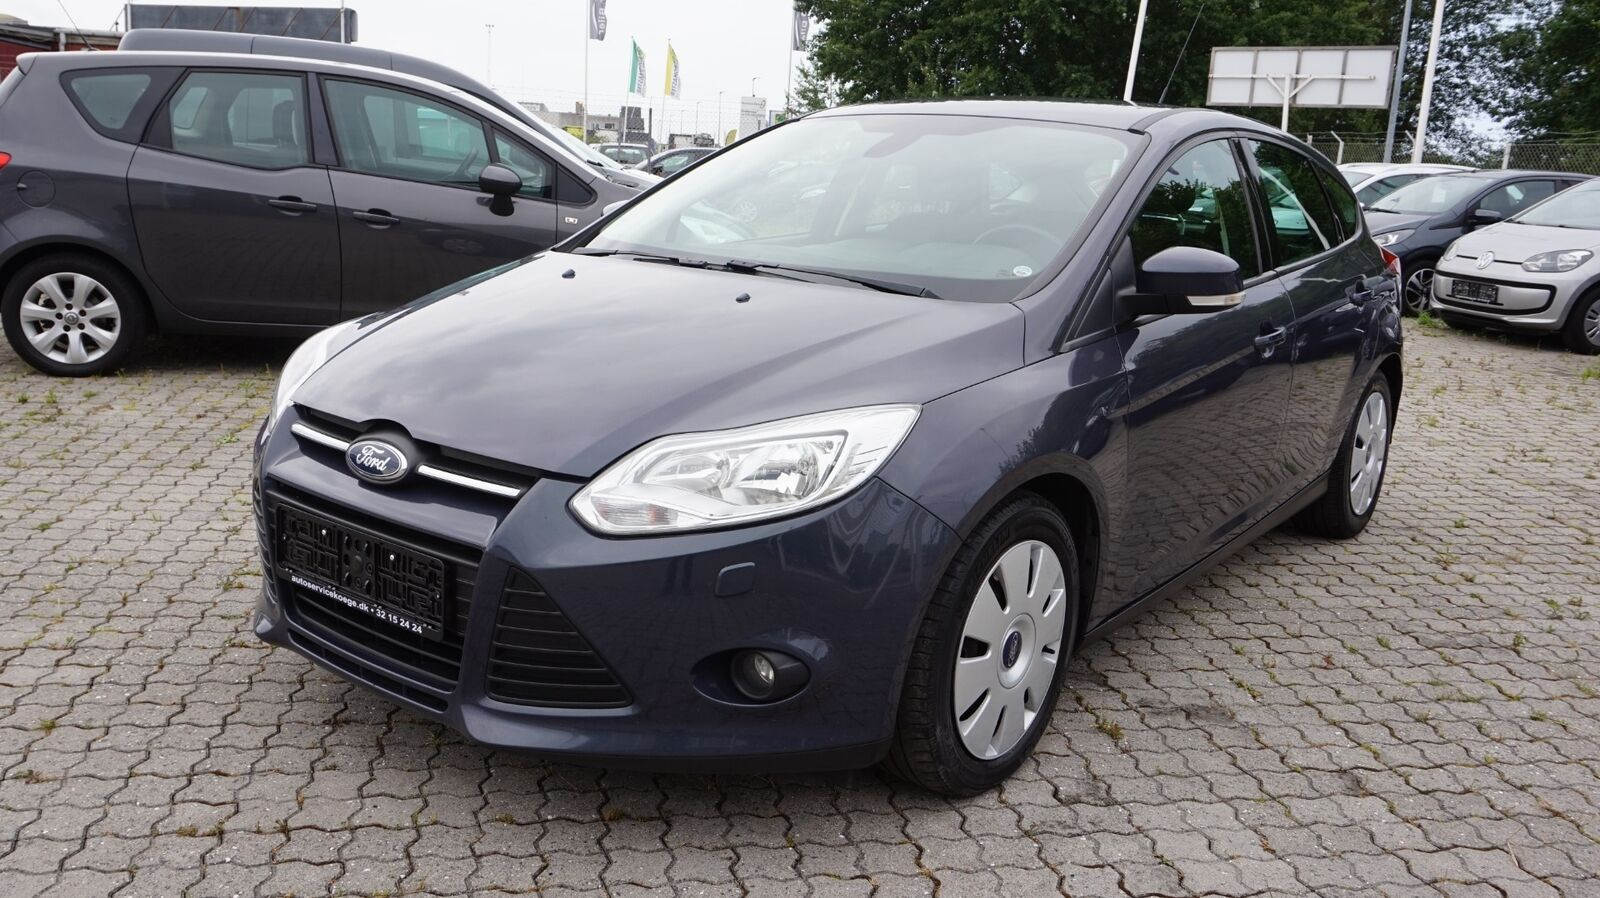 Ford Focus 1,6 TDCi 95 Edition 5d